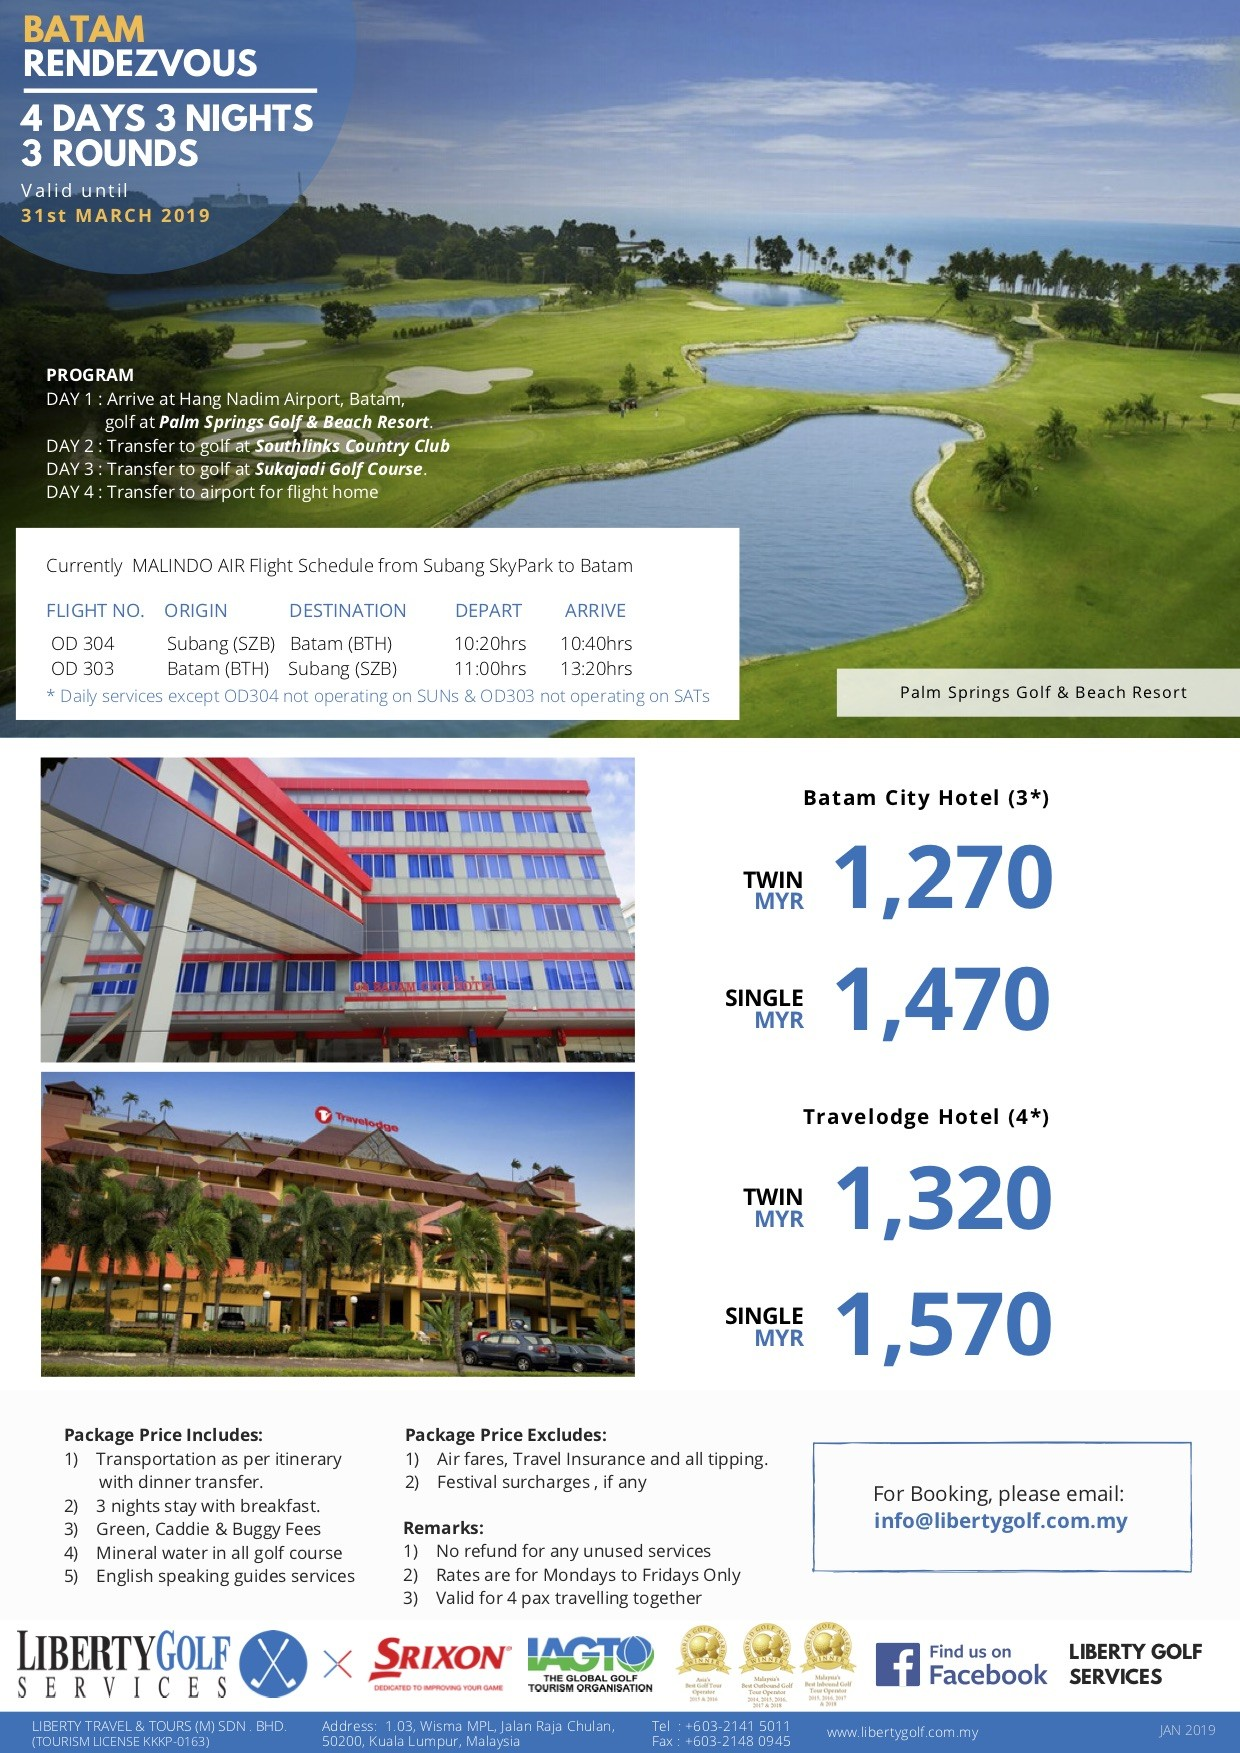 March 2019 Calendar Landscape Mejores Y Más Novedosos Liberty Golf Batam Golf Package 4d3n3r Of March 2019 Calendar Landscape Recientes 2018 Hubble Space Telescope Advent Calendar the atlantic